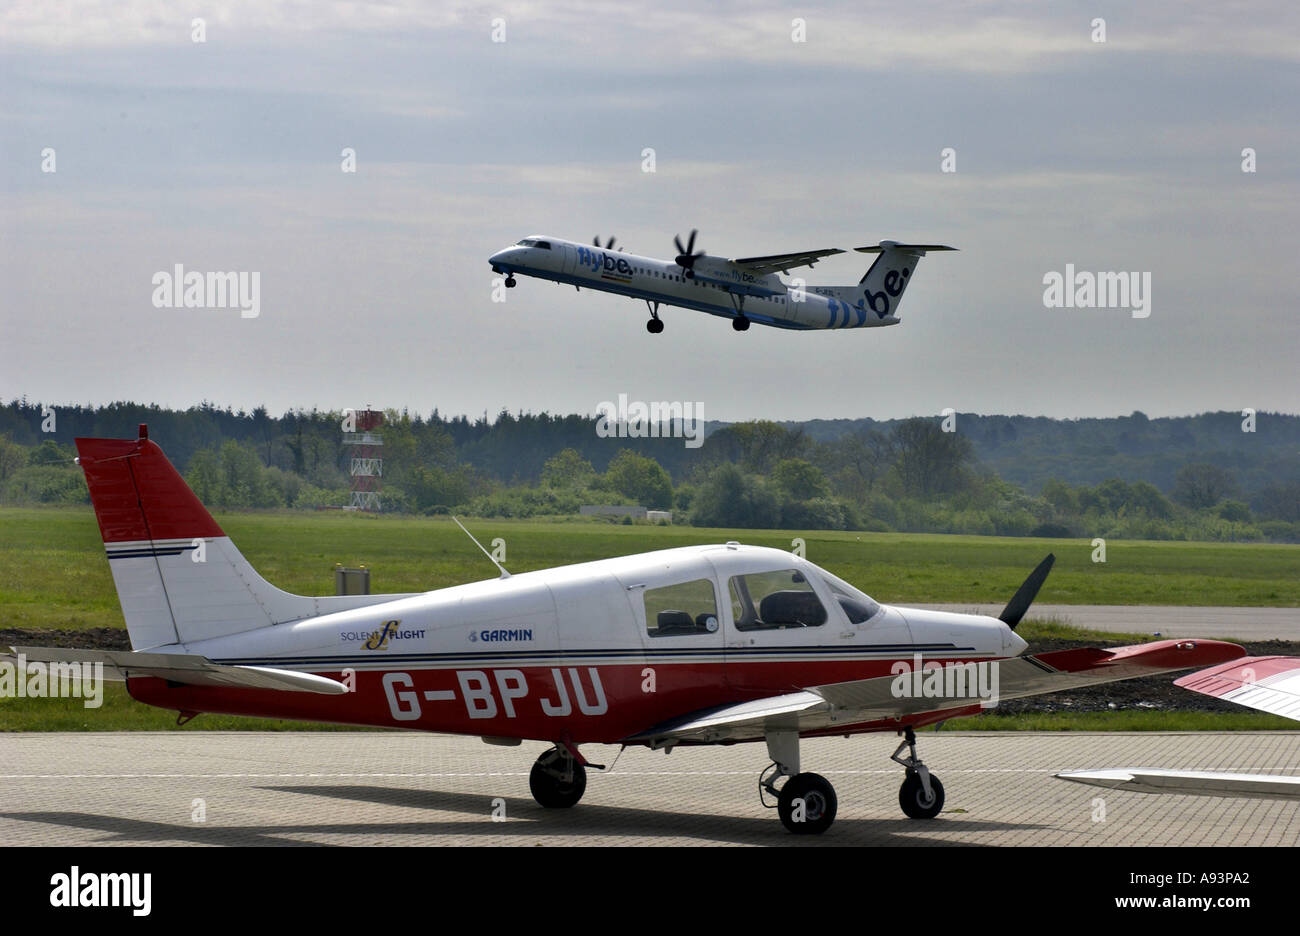 Flybe plane taking off from Southampton Airport and light aircraft waiting on runway. - Stock Image